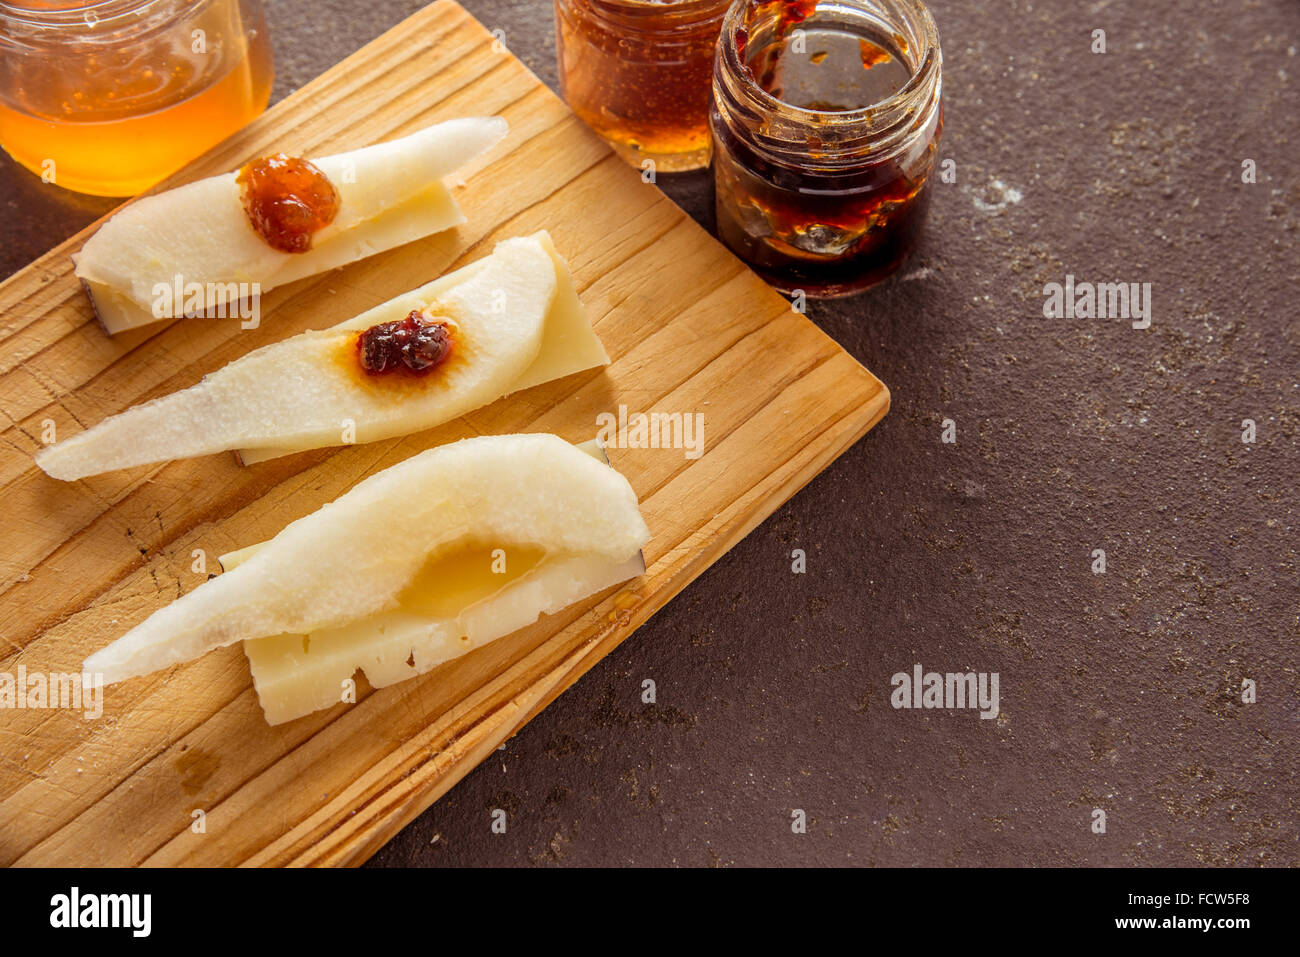 A composition of italian cheese pecorino slices with jams and pears on a wooden chopping board - Stock Image